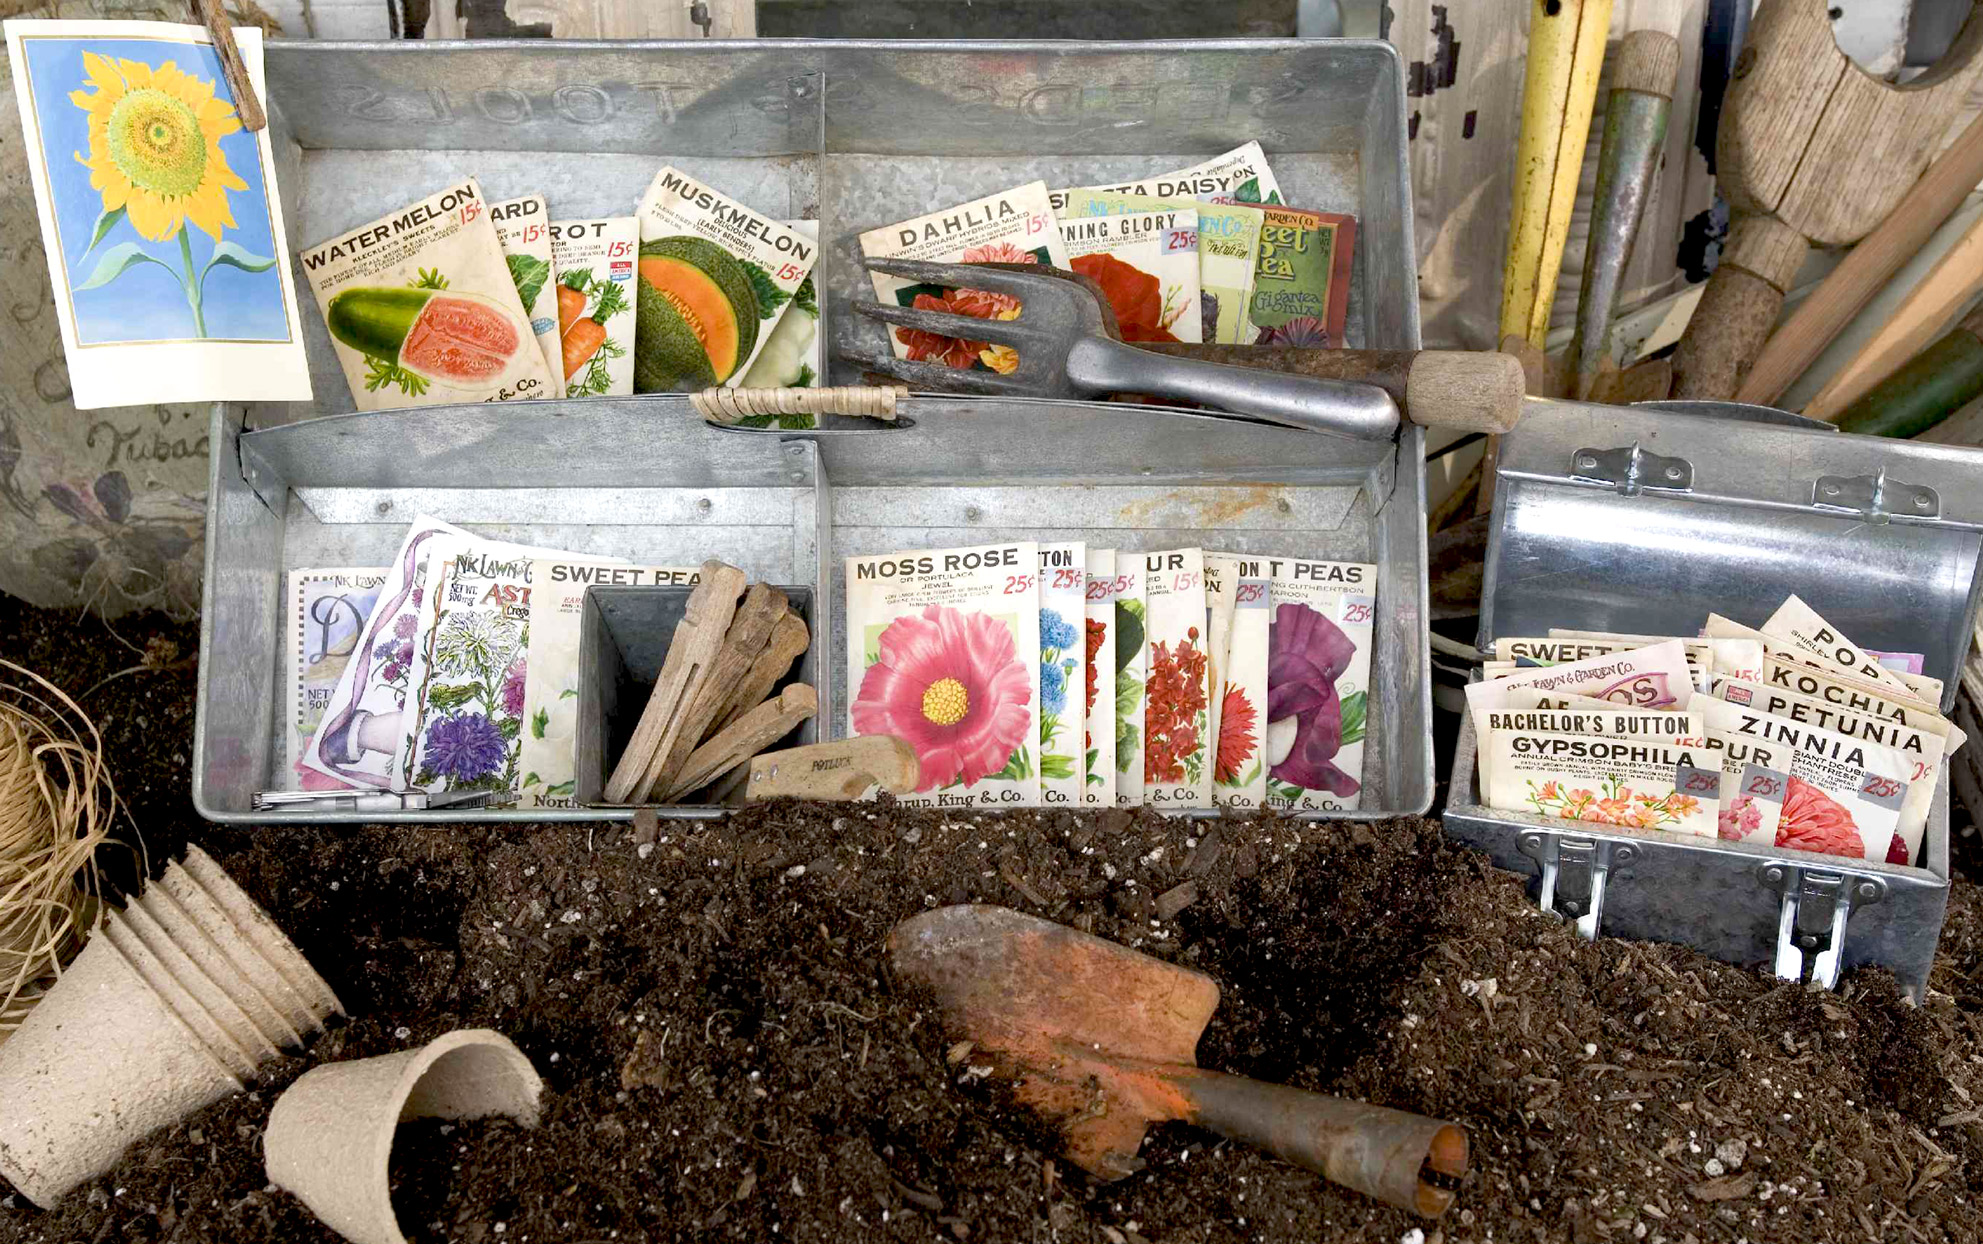 Metal containers with seed packets and garden tools